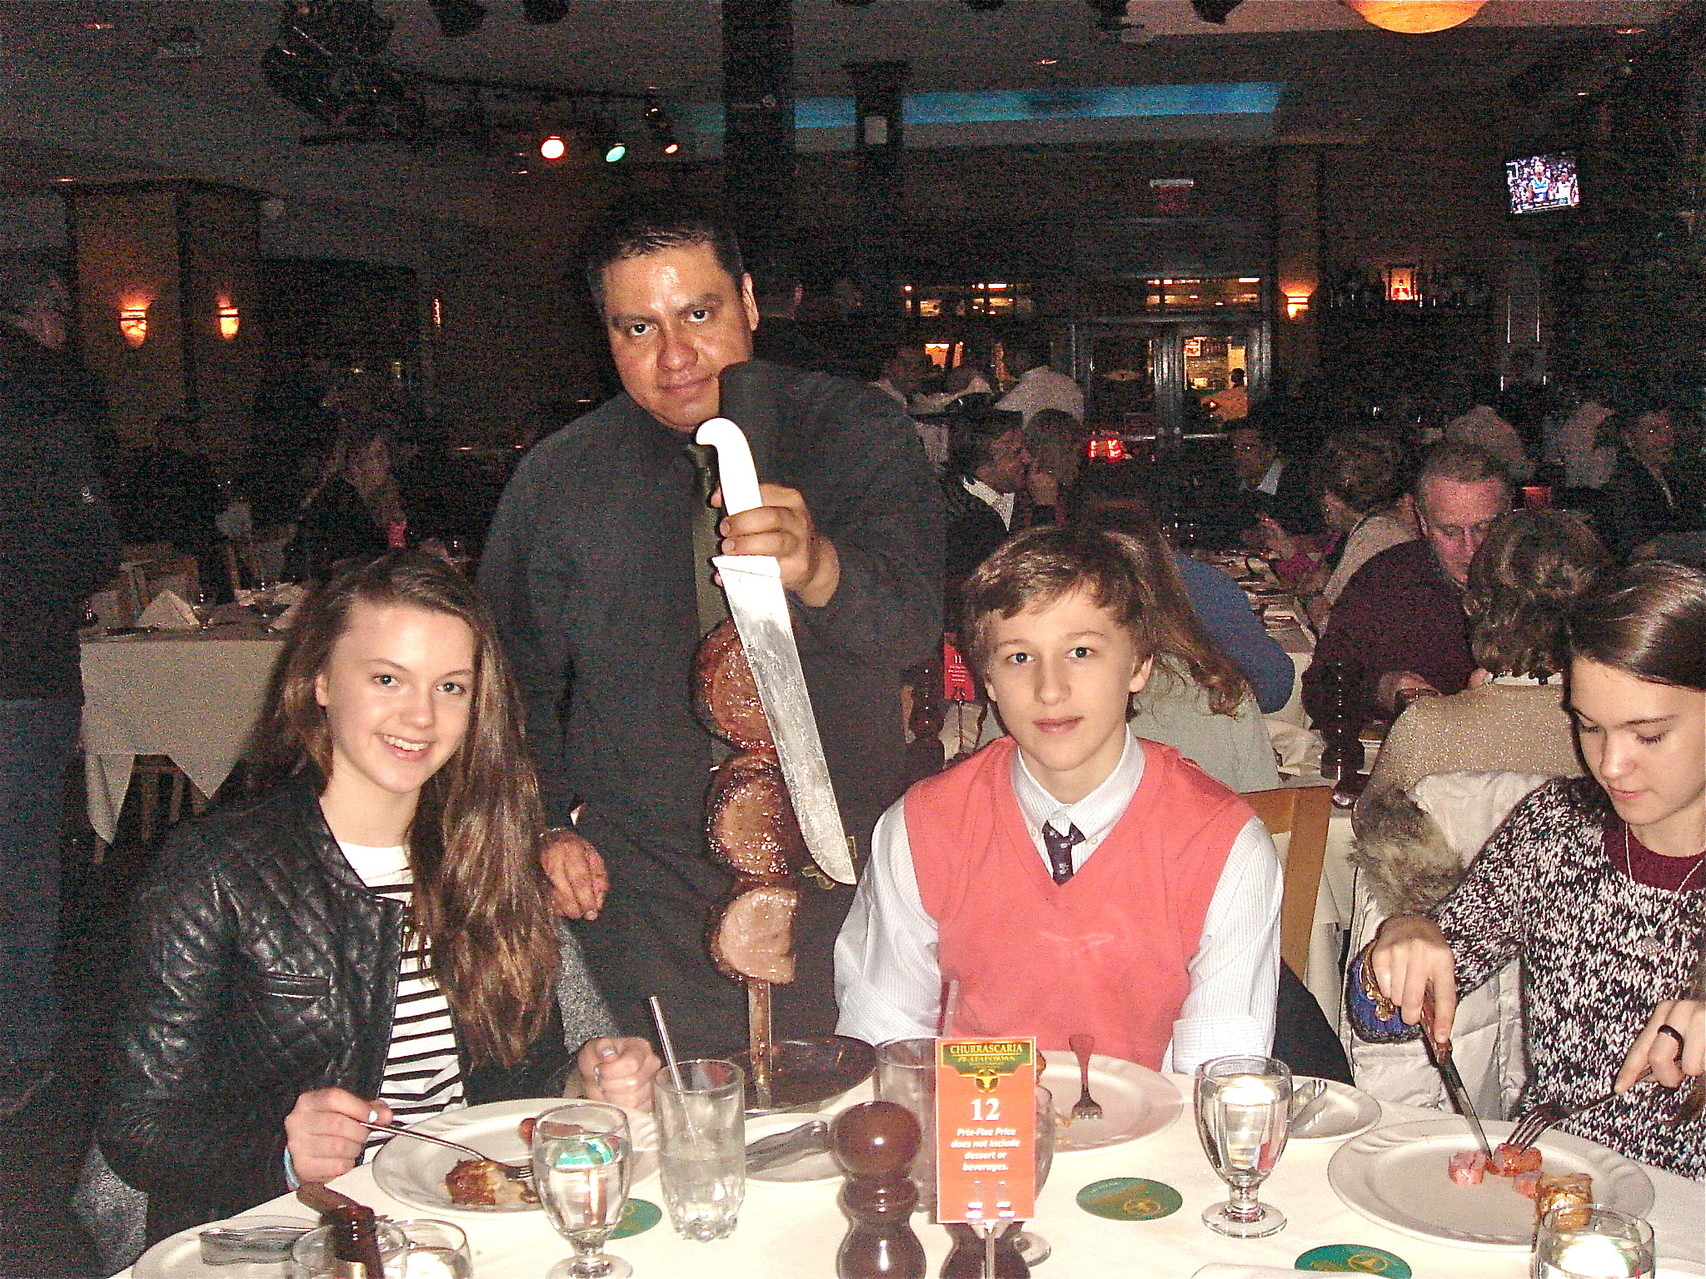 March 1, Celebrating Kate & Jack's 13th birthdays with dinner and the theatre, Phantom of the Opera